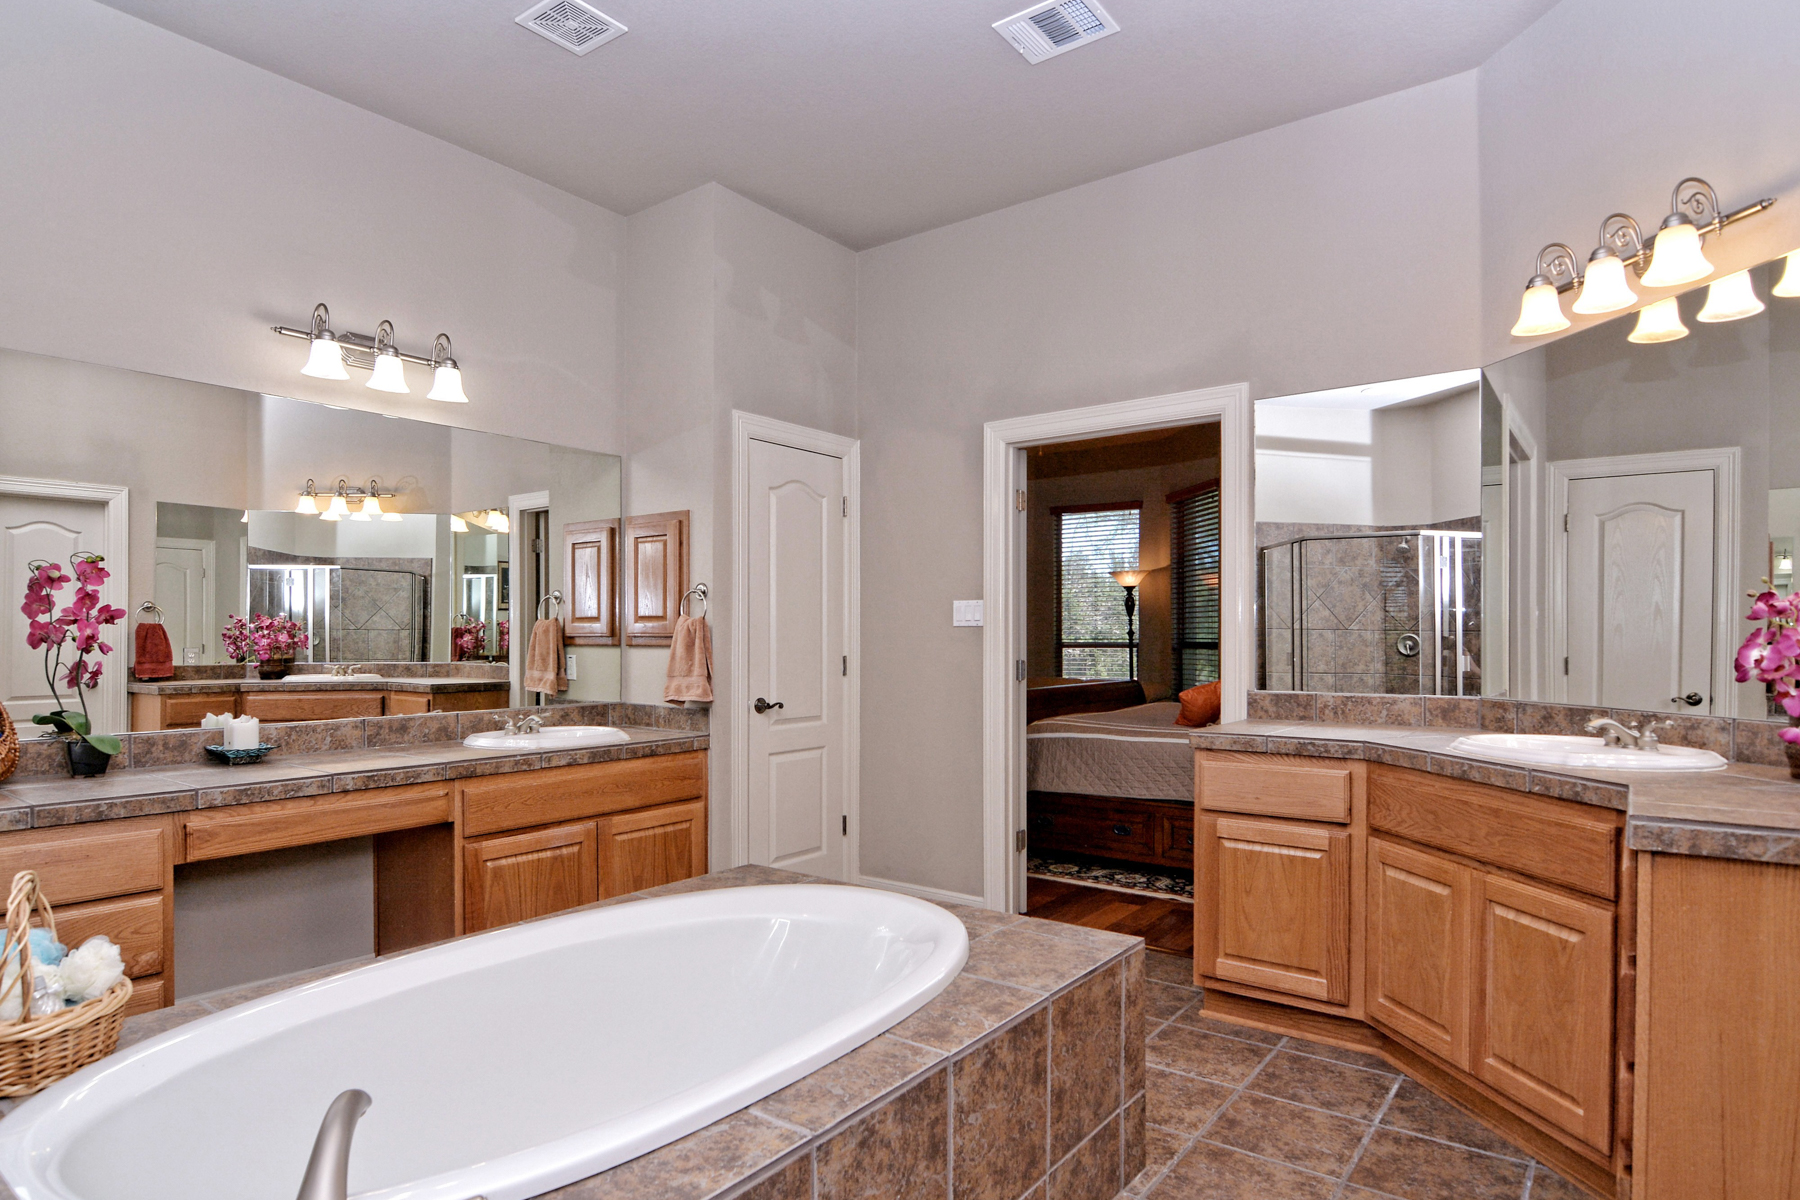 Additional photo for property listing at Gorgeous Home in Cavalo Creek Estates 21502 Roan Chase San Antonio, Texas 78259 United States